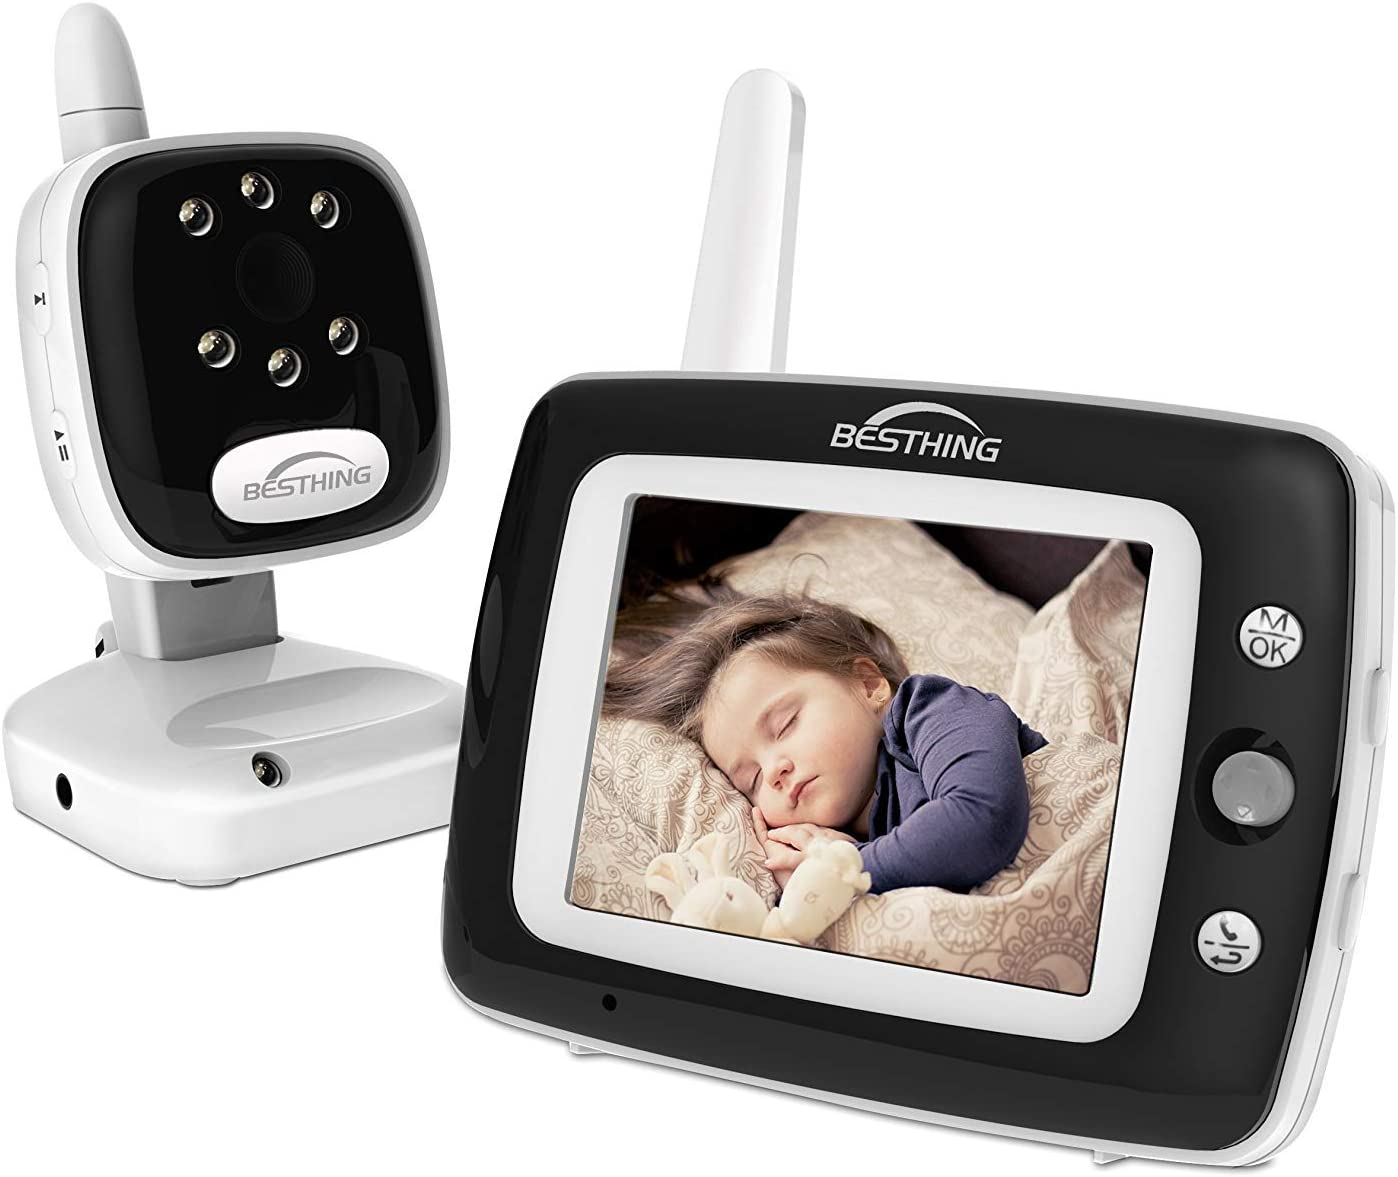 BESTHING Baby Monitor, Digital Video Baby Monitor with Camera, 3.5 Inch Color Screen, Long Range Wireless Monitoring, Night Vision, Soothing Lullabies, Two Way Audio and Temperature Display(Black)